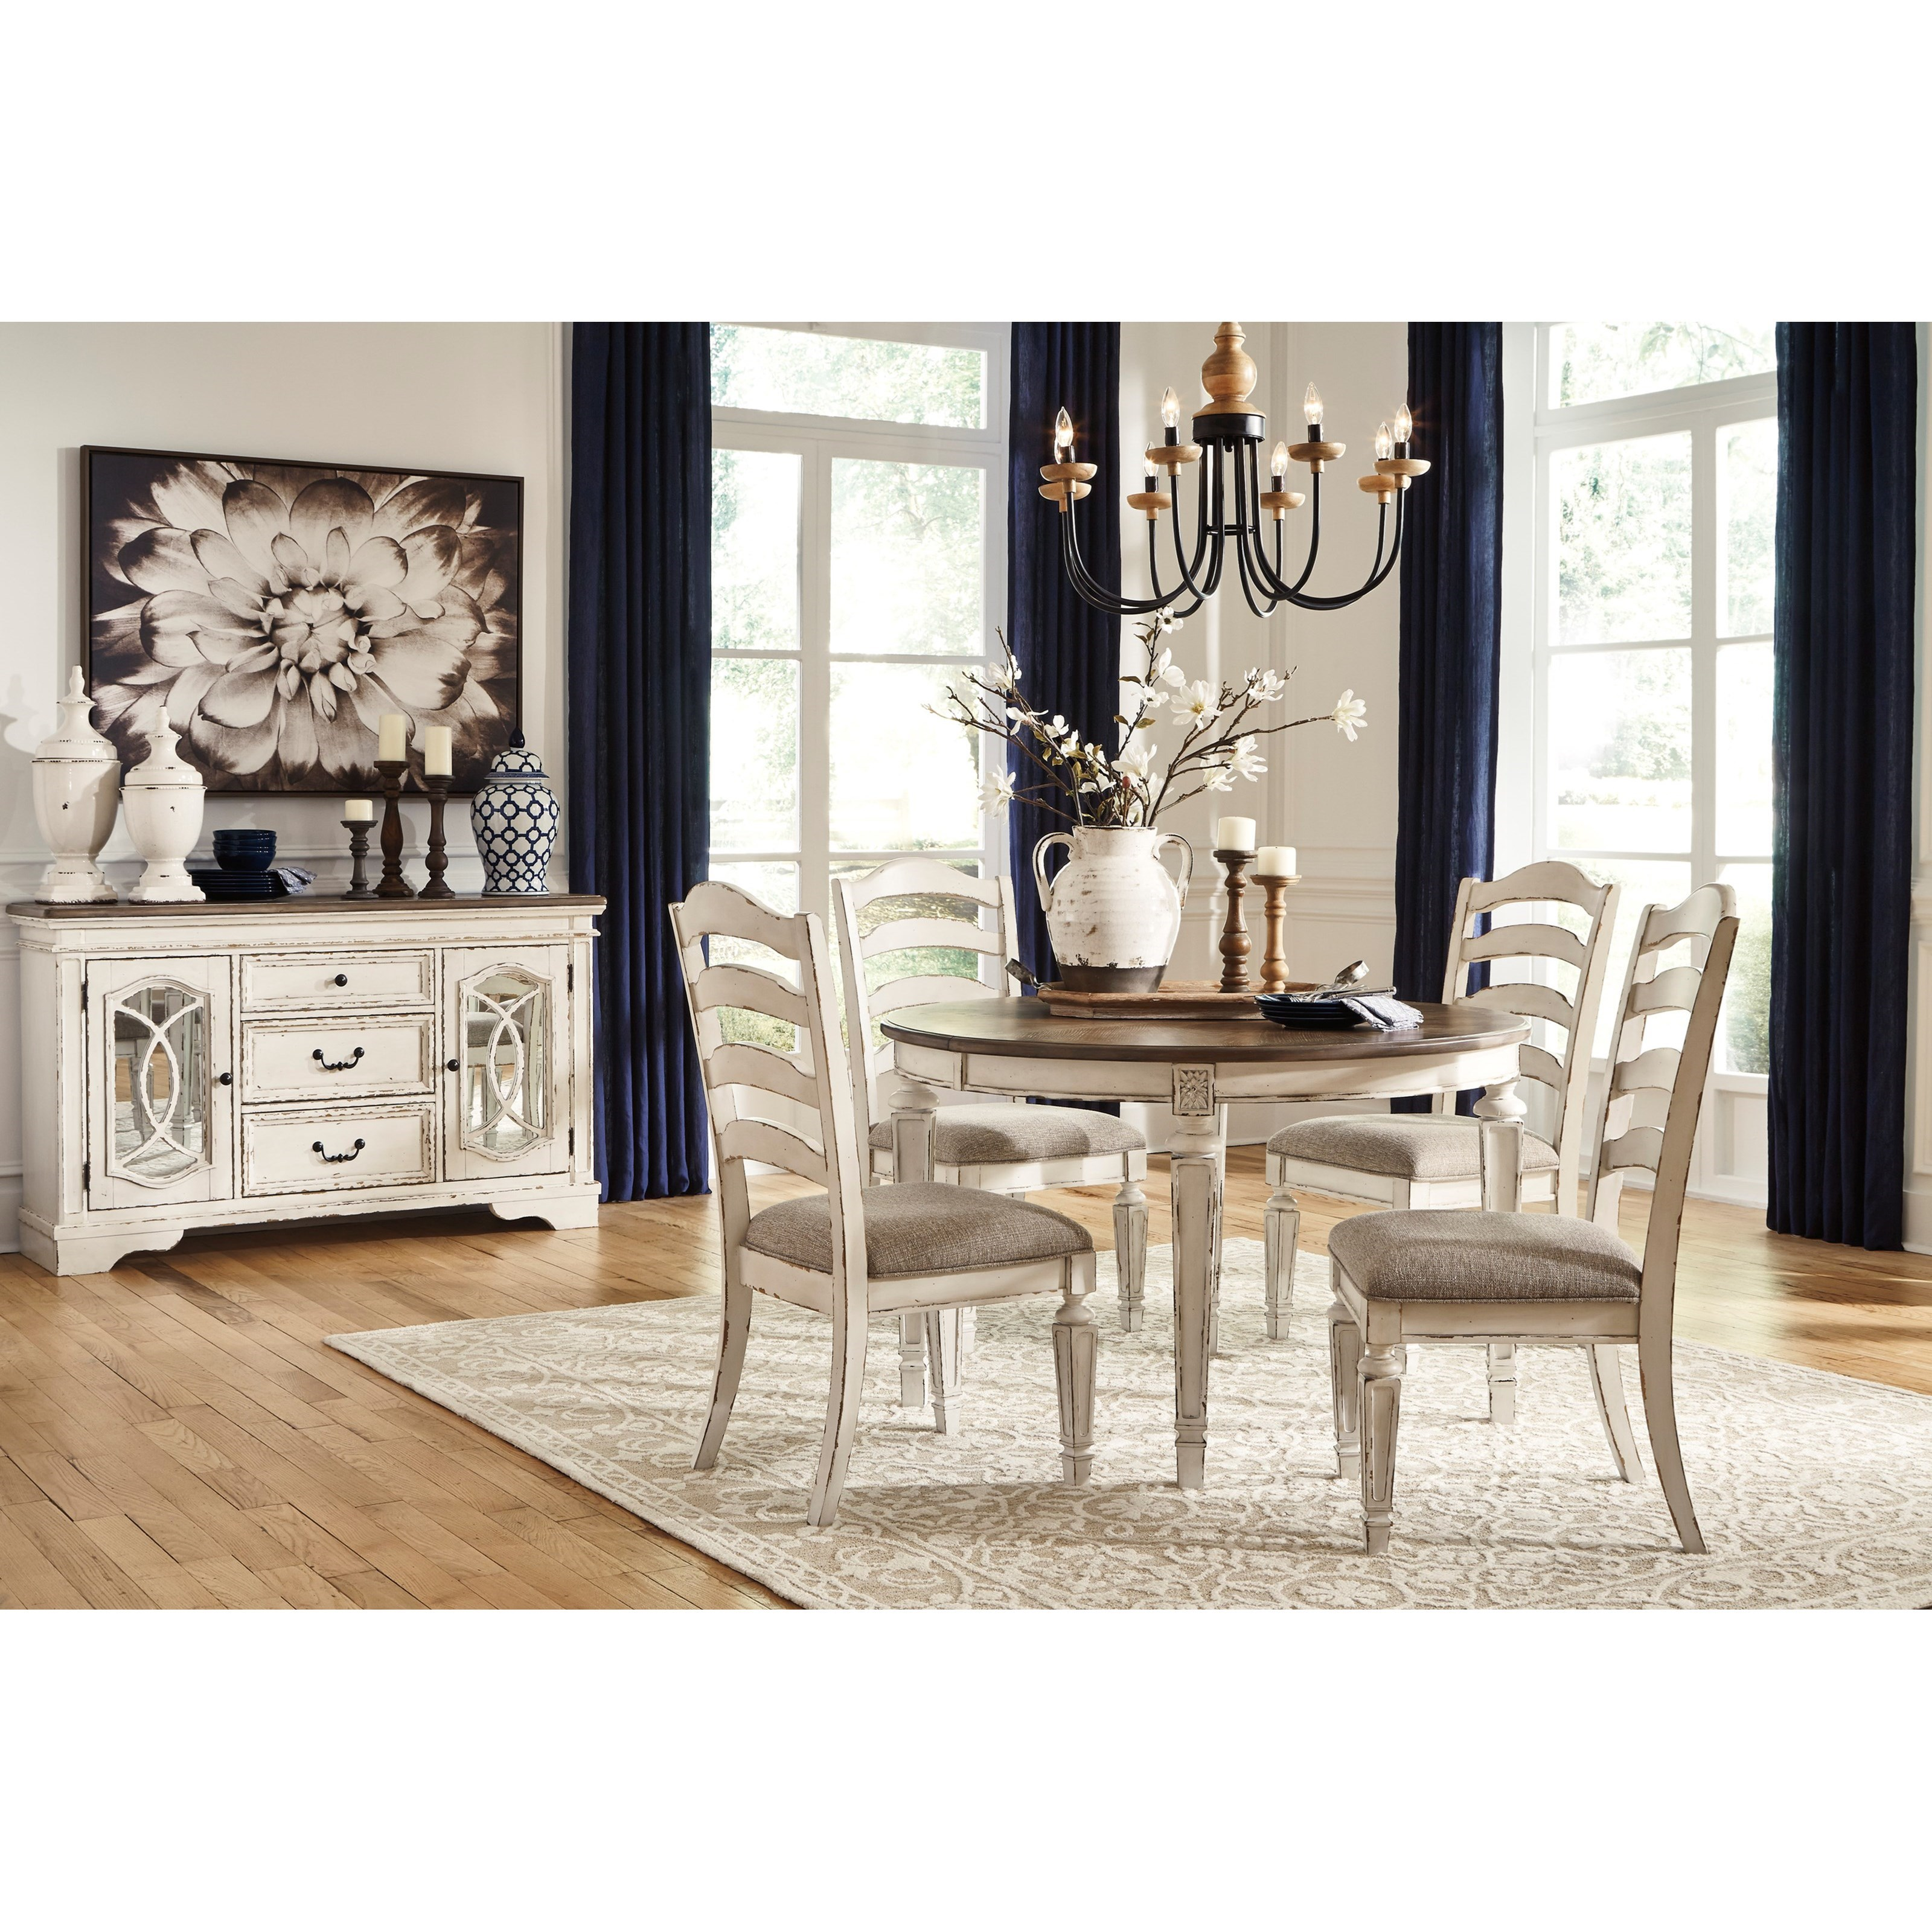 signature design by ashley realyn casual dining room group. Black Bedroom Furniture Sets. Home Design Ideas